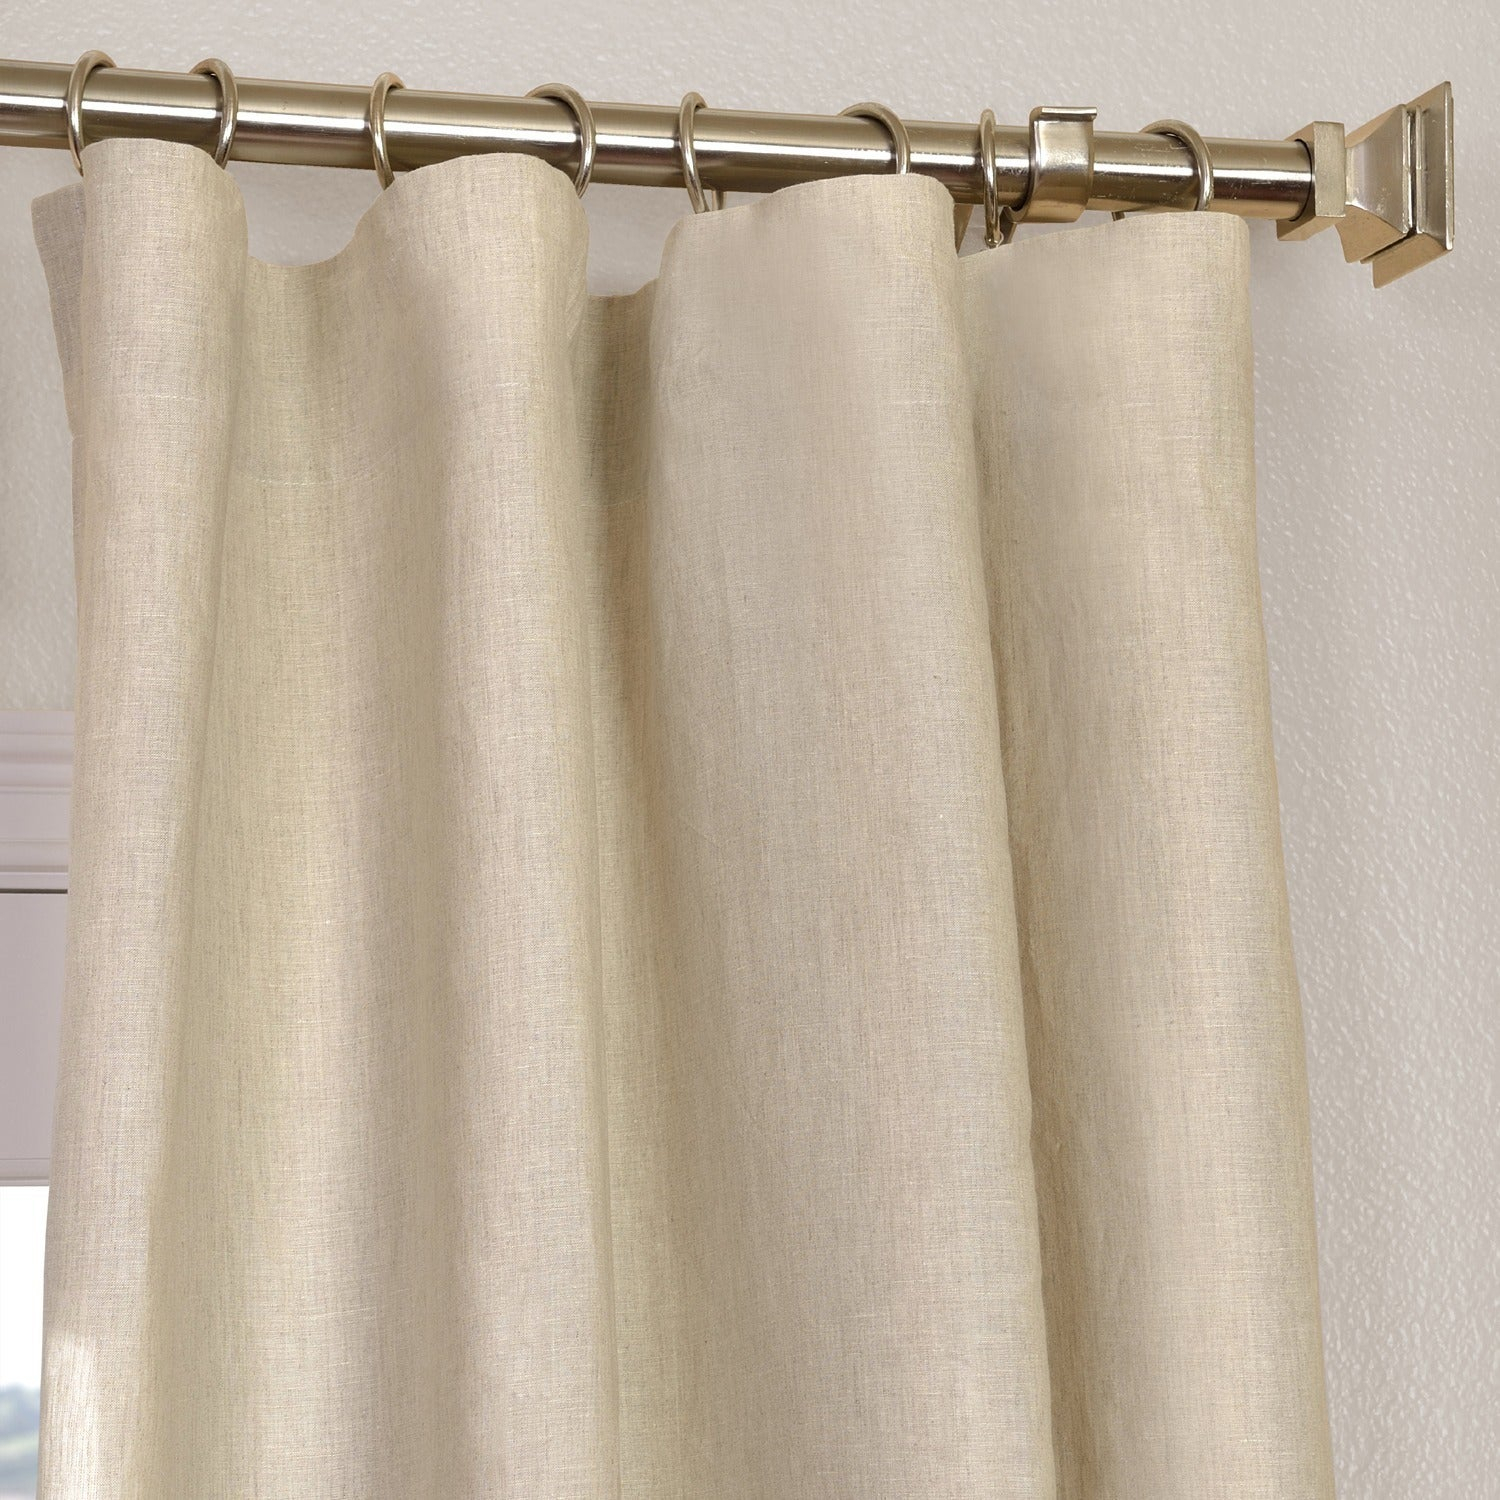 Exclusive Fabrics Signature French Linen Curtain Panel Inside Signature French Linen Curtain Panels (View 15 of 30)